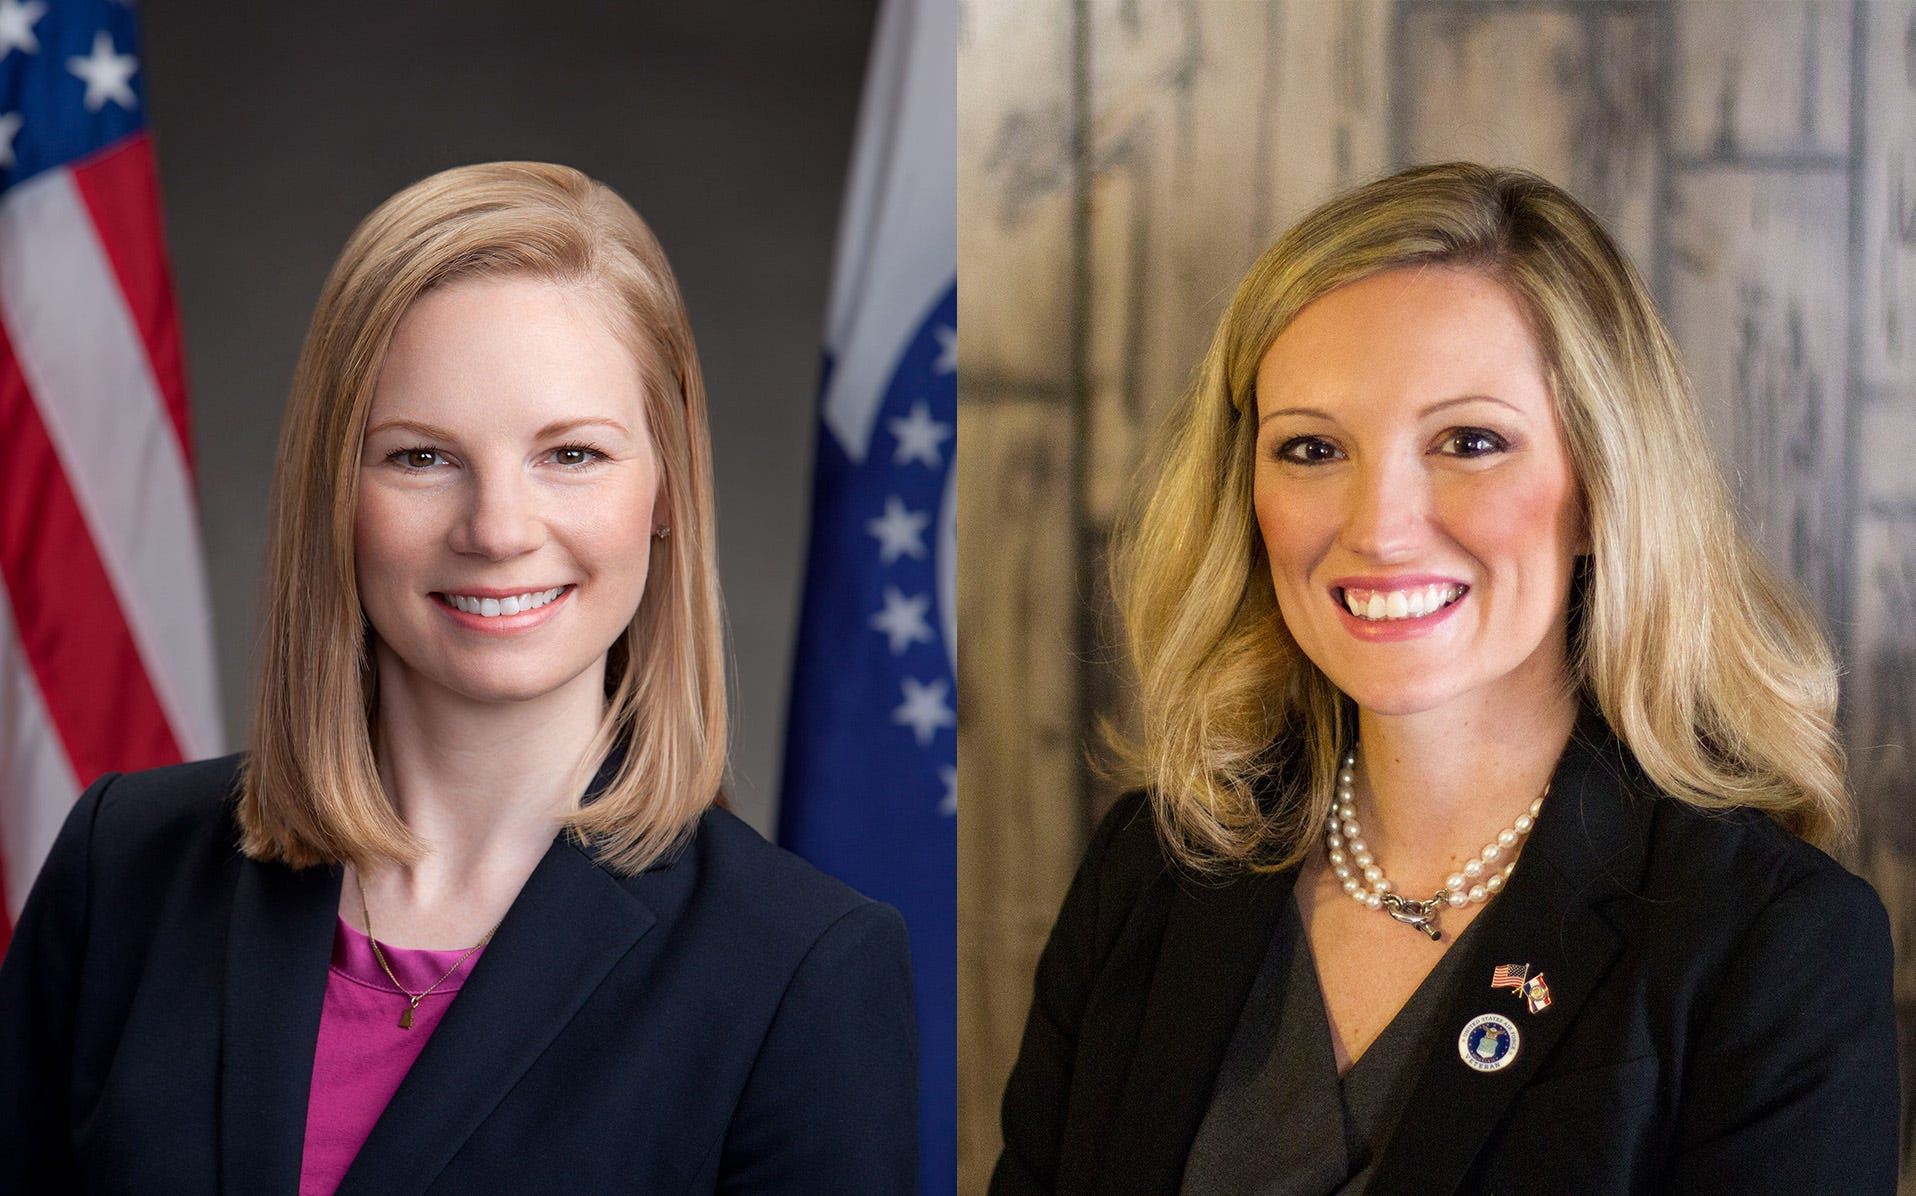 Missouri State Auditor Nicole Galloway, CPA, left, and Saundra McDowell, a candidate for Missouri State Auditor in 2018.